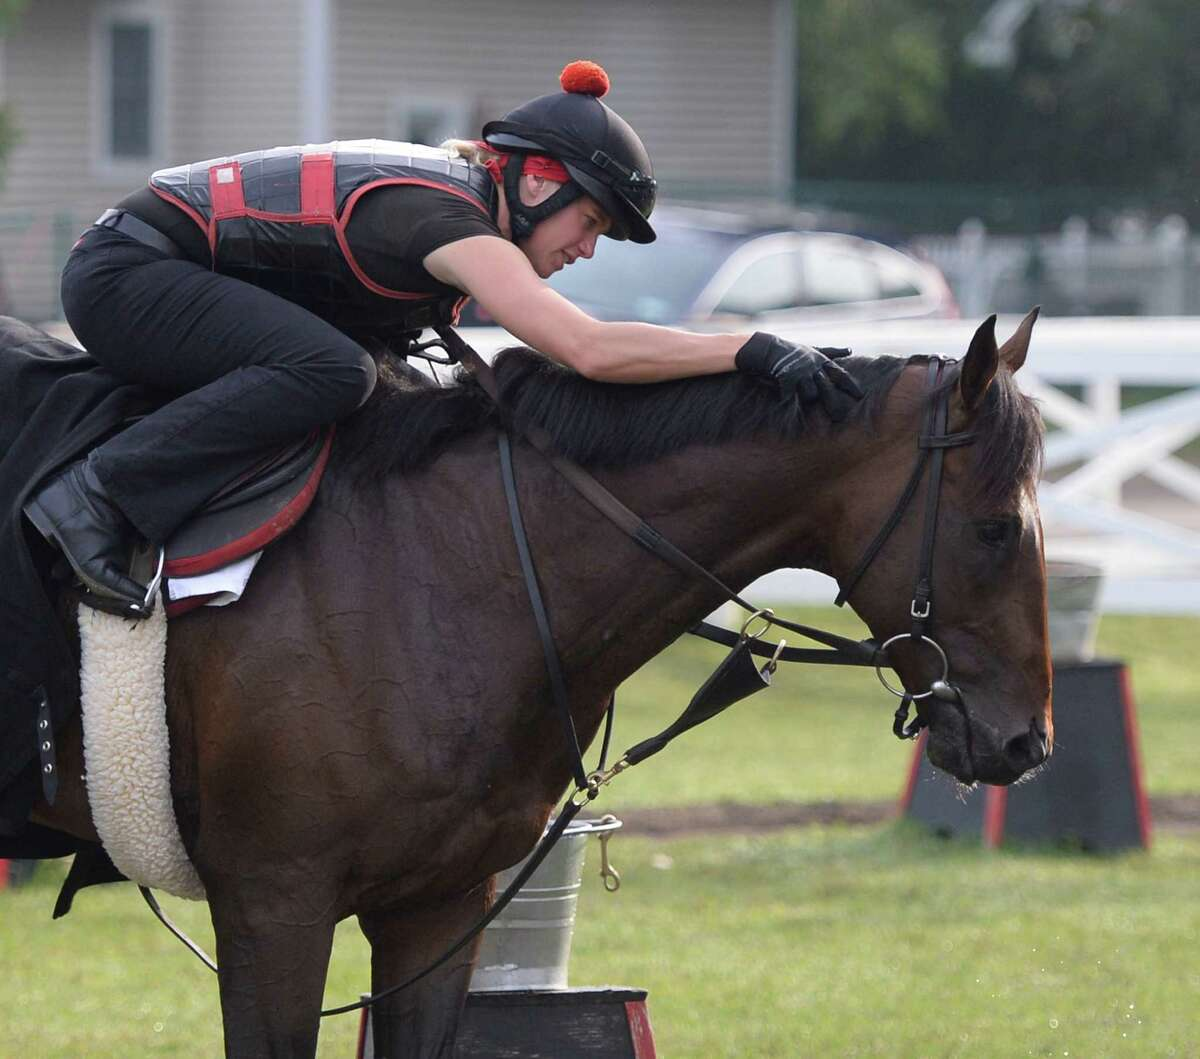 Exercise rider Jen Patterson gives Kentucky Derby winner Orb some affection Monday morning, Aug 19, 2013, before his final major work on the Oklahoma Training Center track in Saratoga Springs, N.Y. Orb will compete in Saturday's Travers Stakes at Saratoga Race Course. (Skip Dickstein/Times Union)